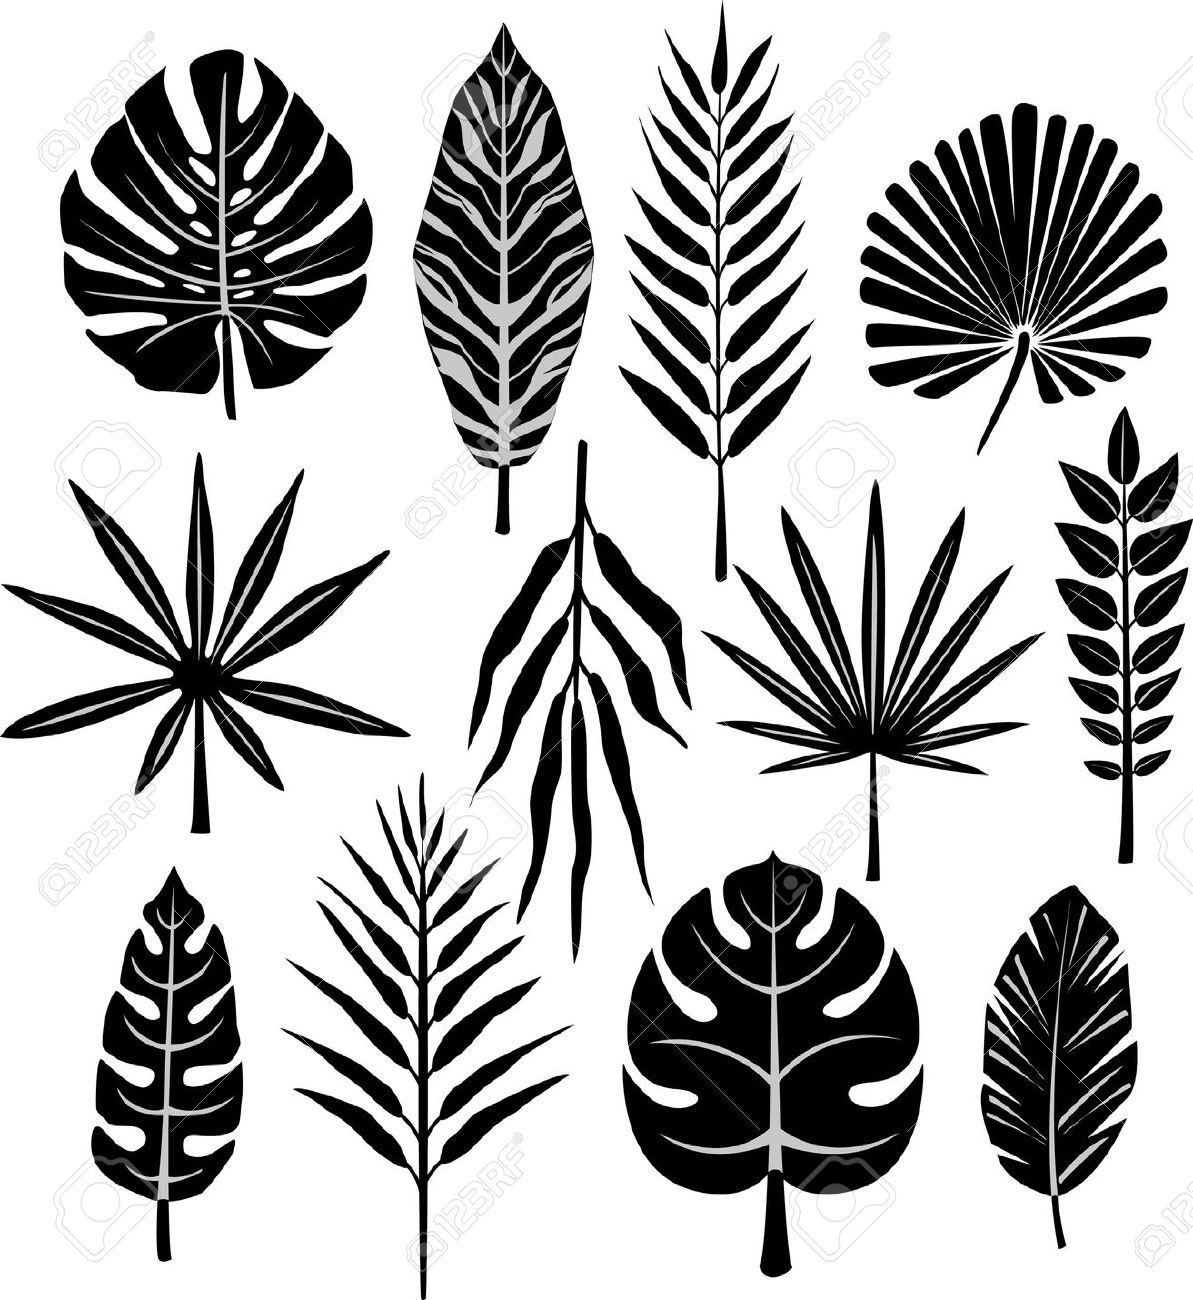 Los Angeles Palm Trees Black And White Google Search Folha Estampada Trabalhos Manuais Folhas Set of 19 doodle tropical leaves clipart elements in black and white with both transparent backgrounds. pinterest